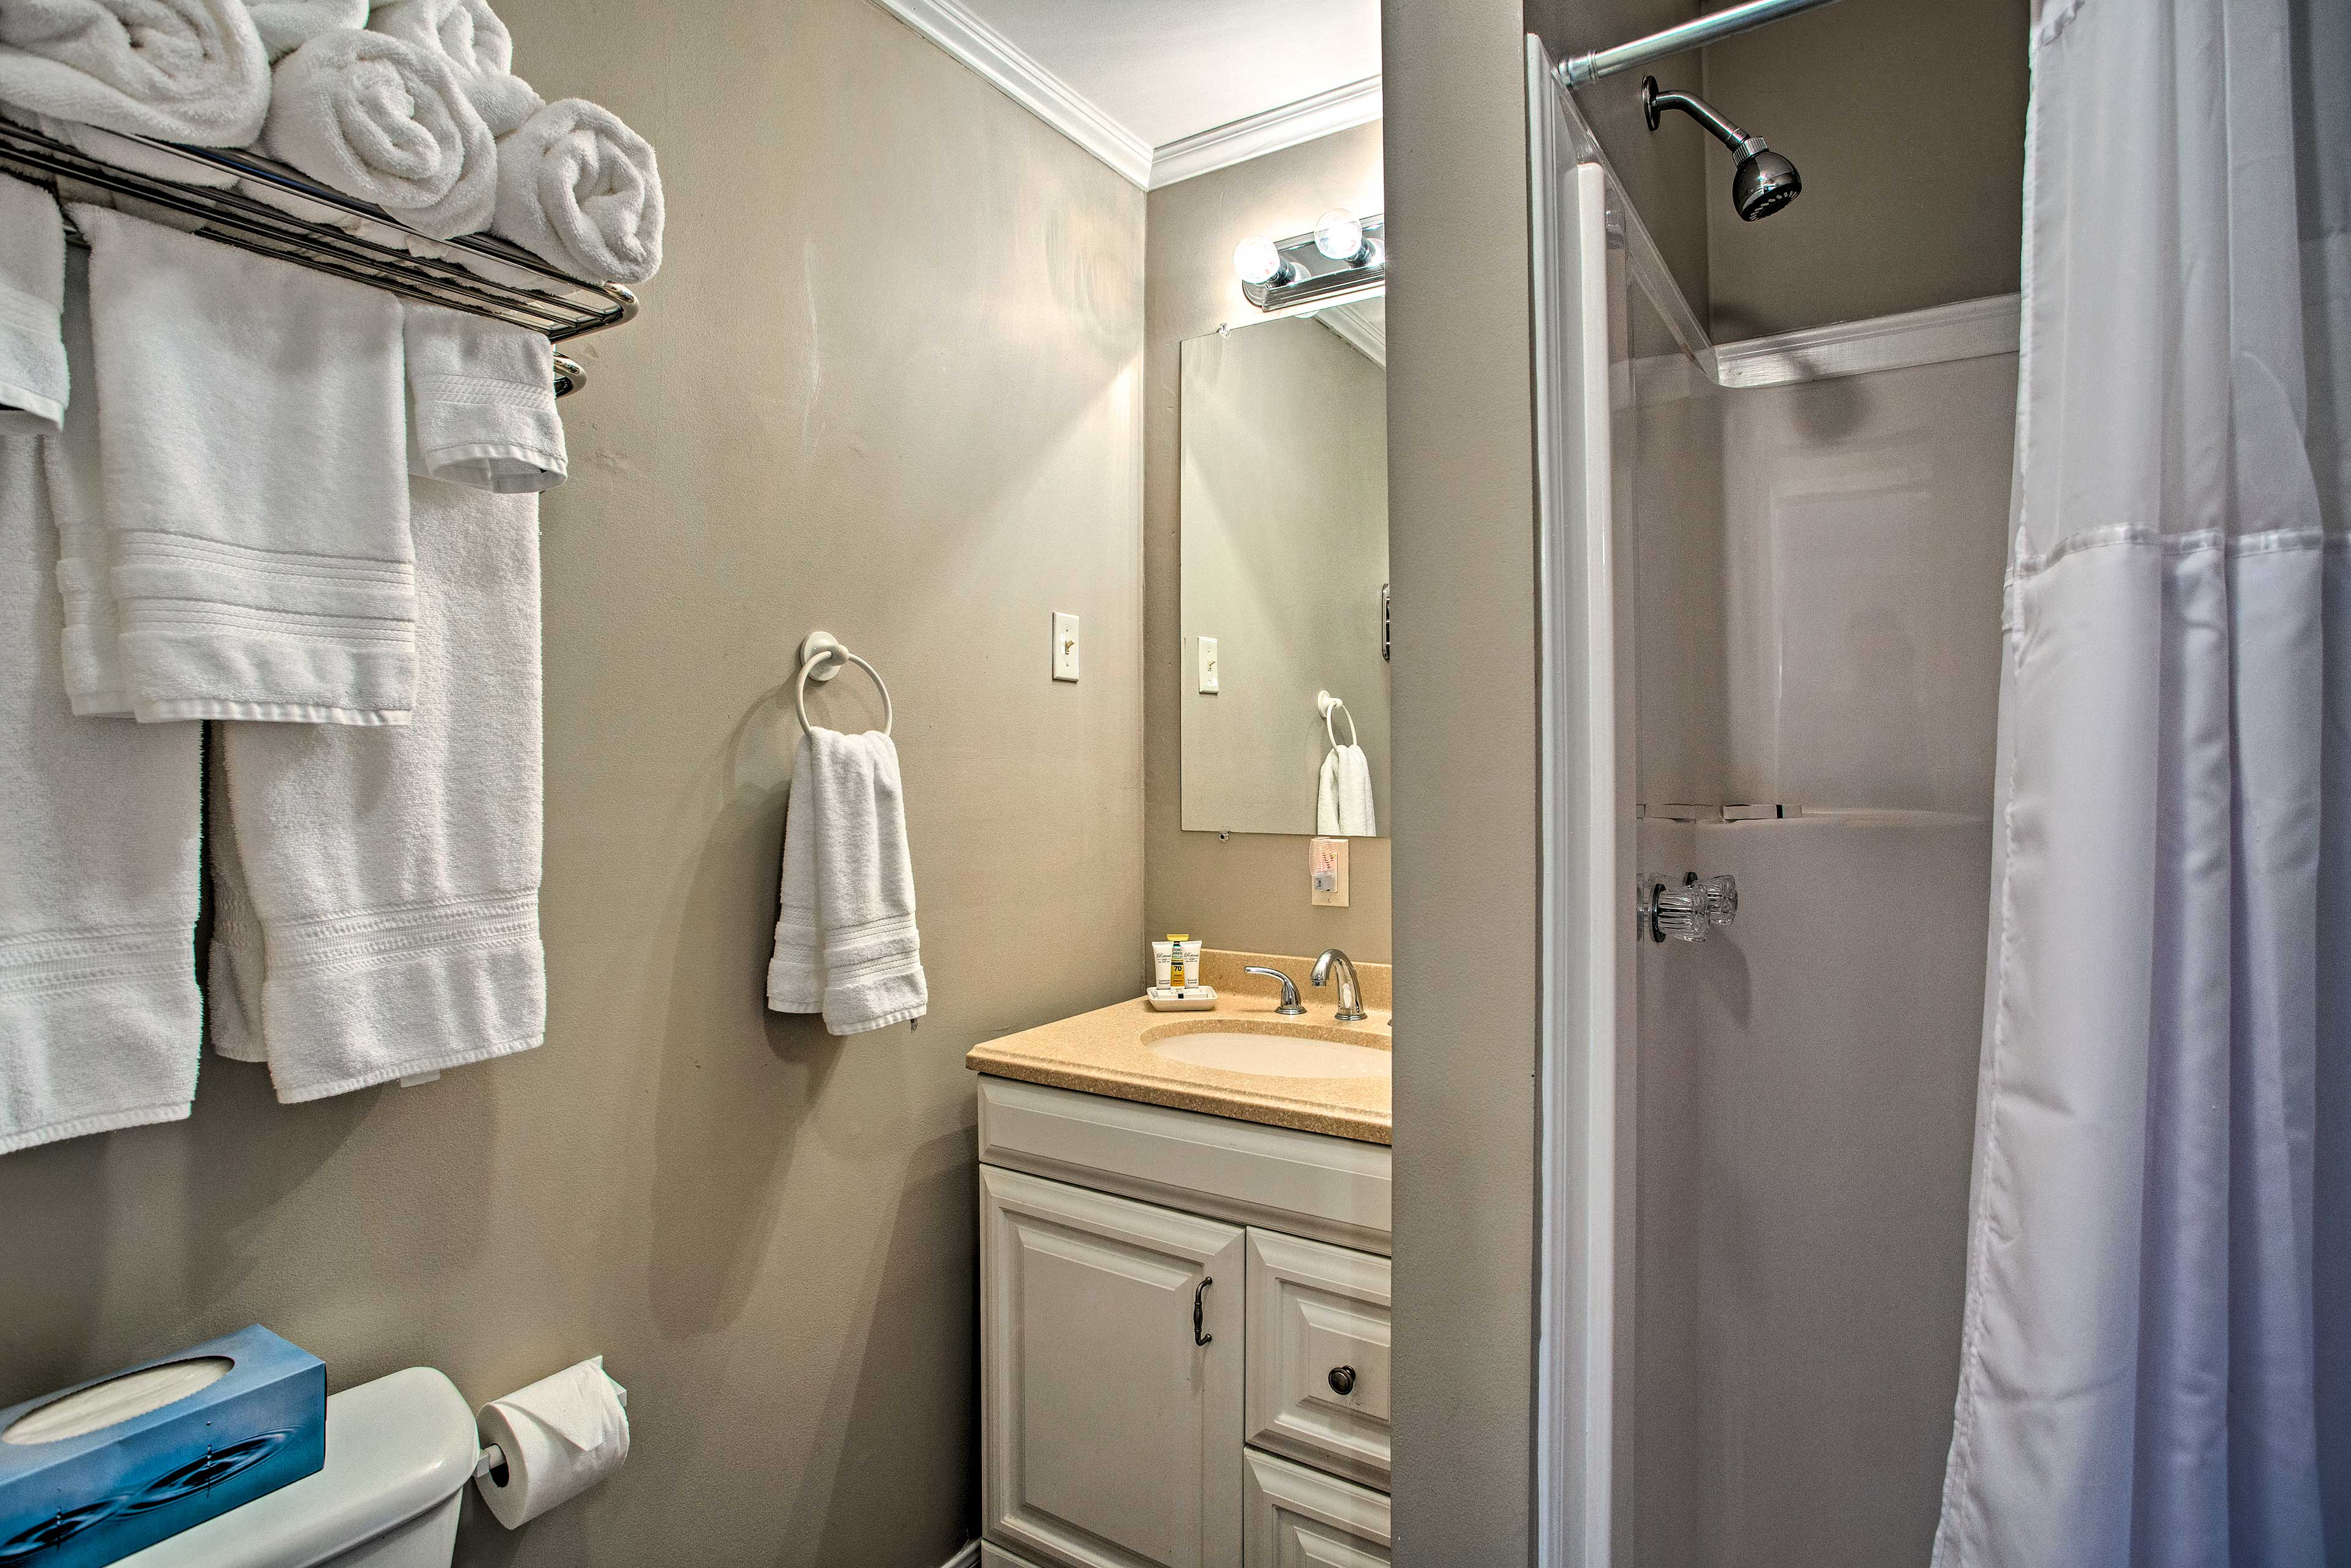 The bathroom is equipped with plenty of towels for your stay.